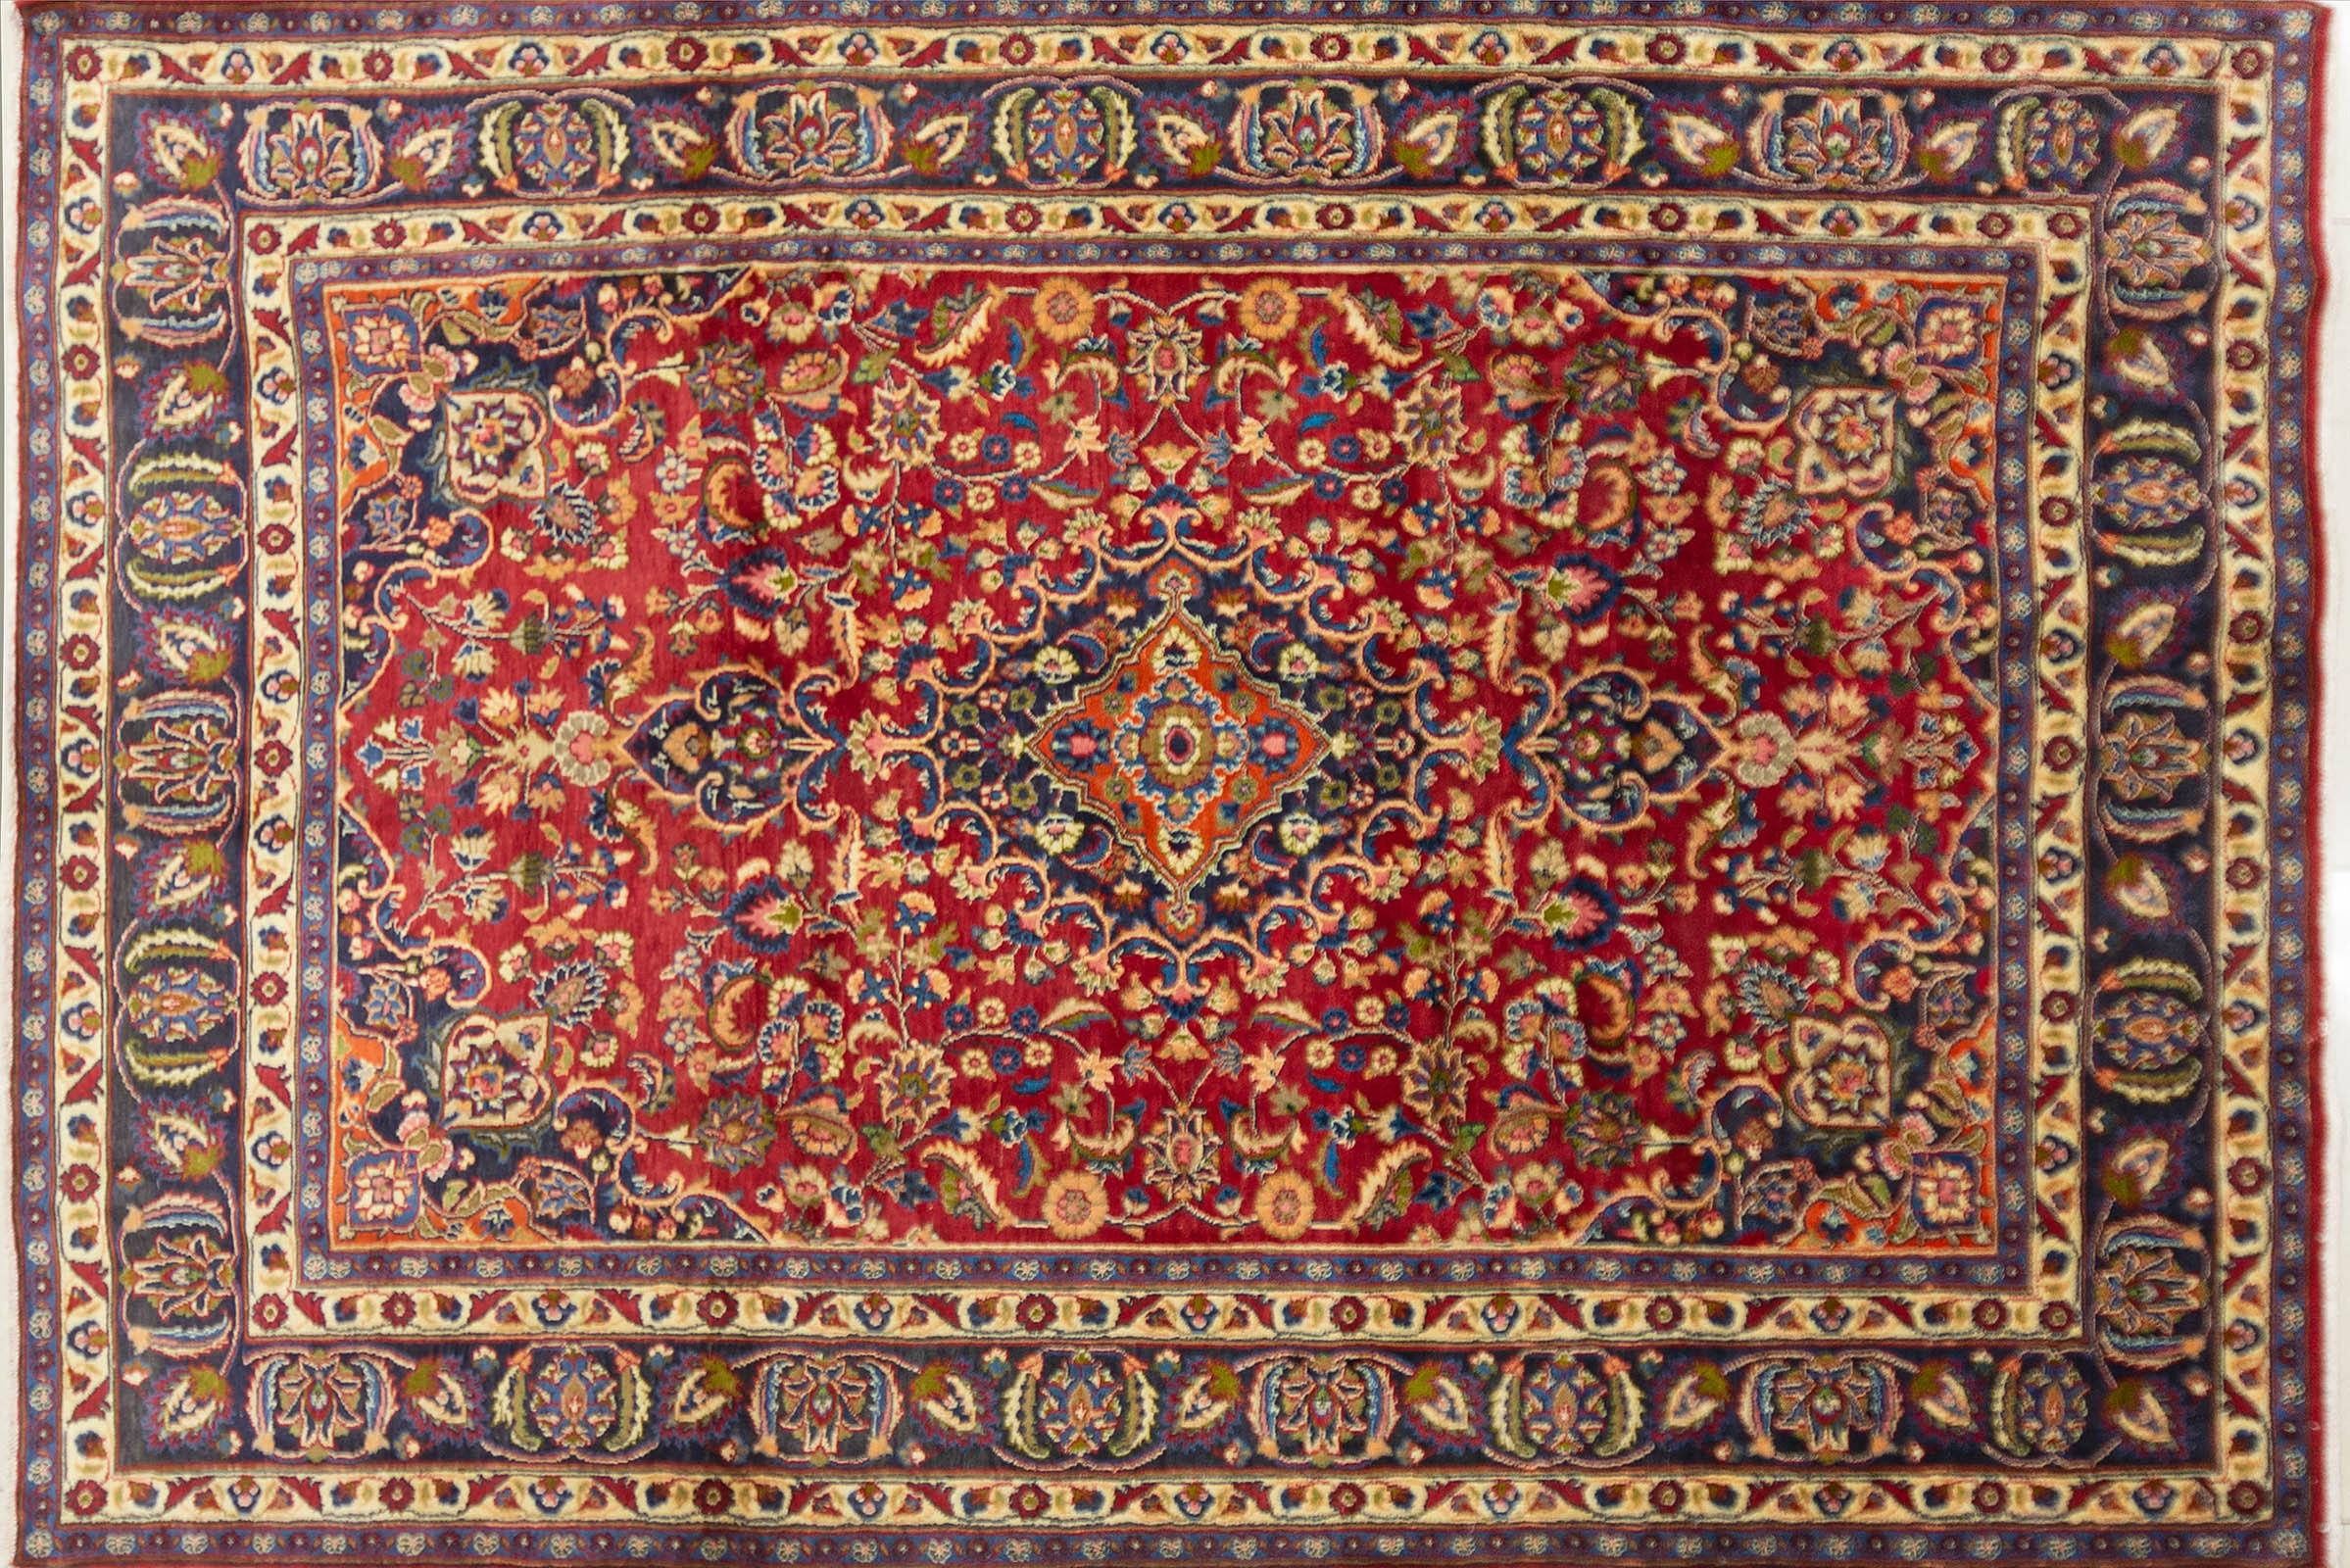 A Persian Hand Knotted Mashad Carpet, 300 x 200